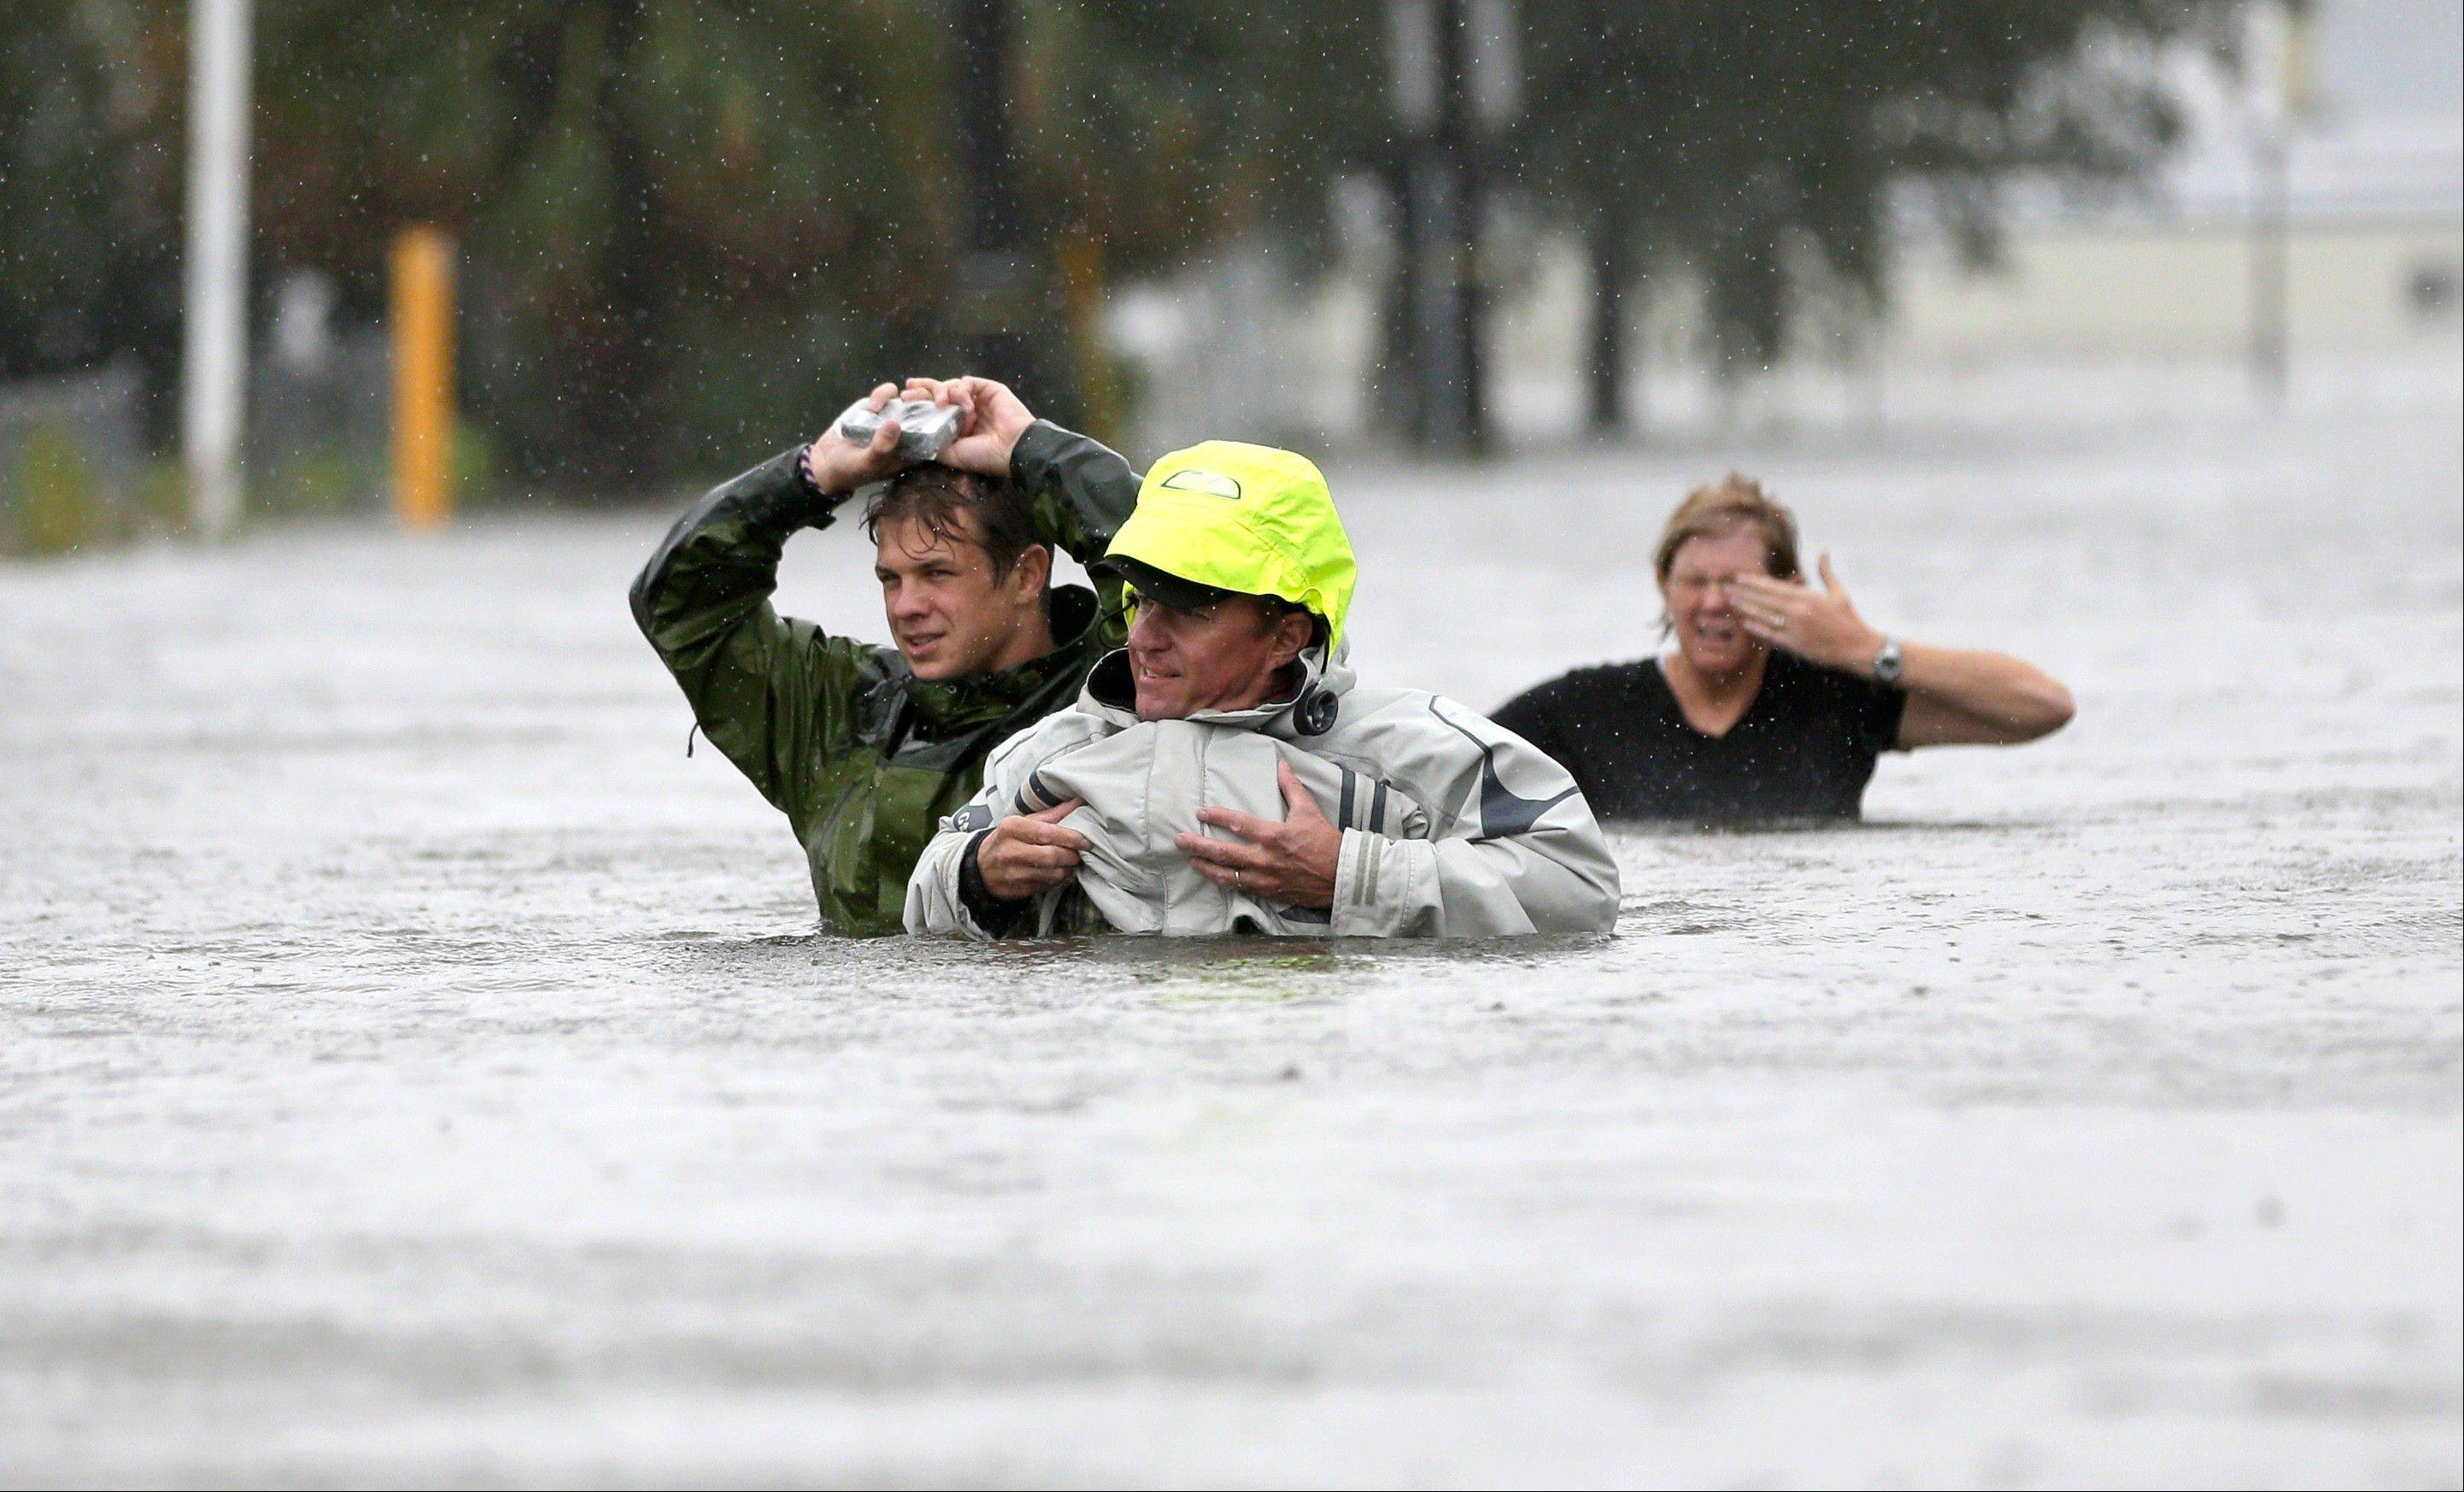 Chuck Cropp, center, his son Piers, left, and wife Liz, right, wade through floodwaters from Hurricane Isaac Wednesday, Aug. 29, 2012, in New Orleans.